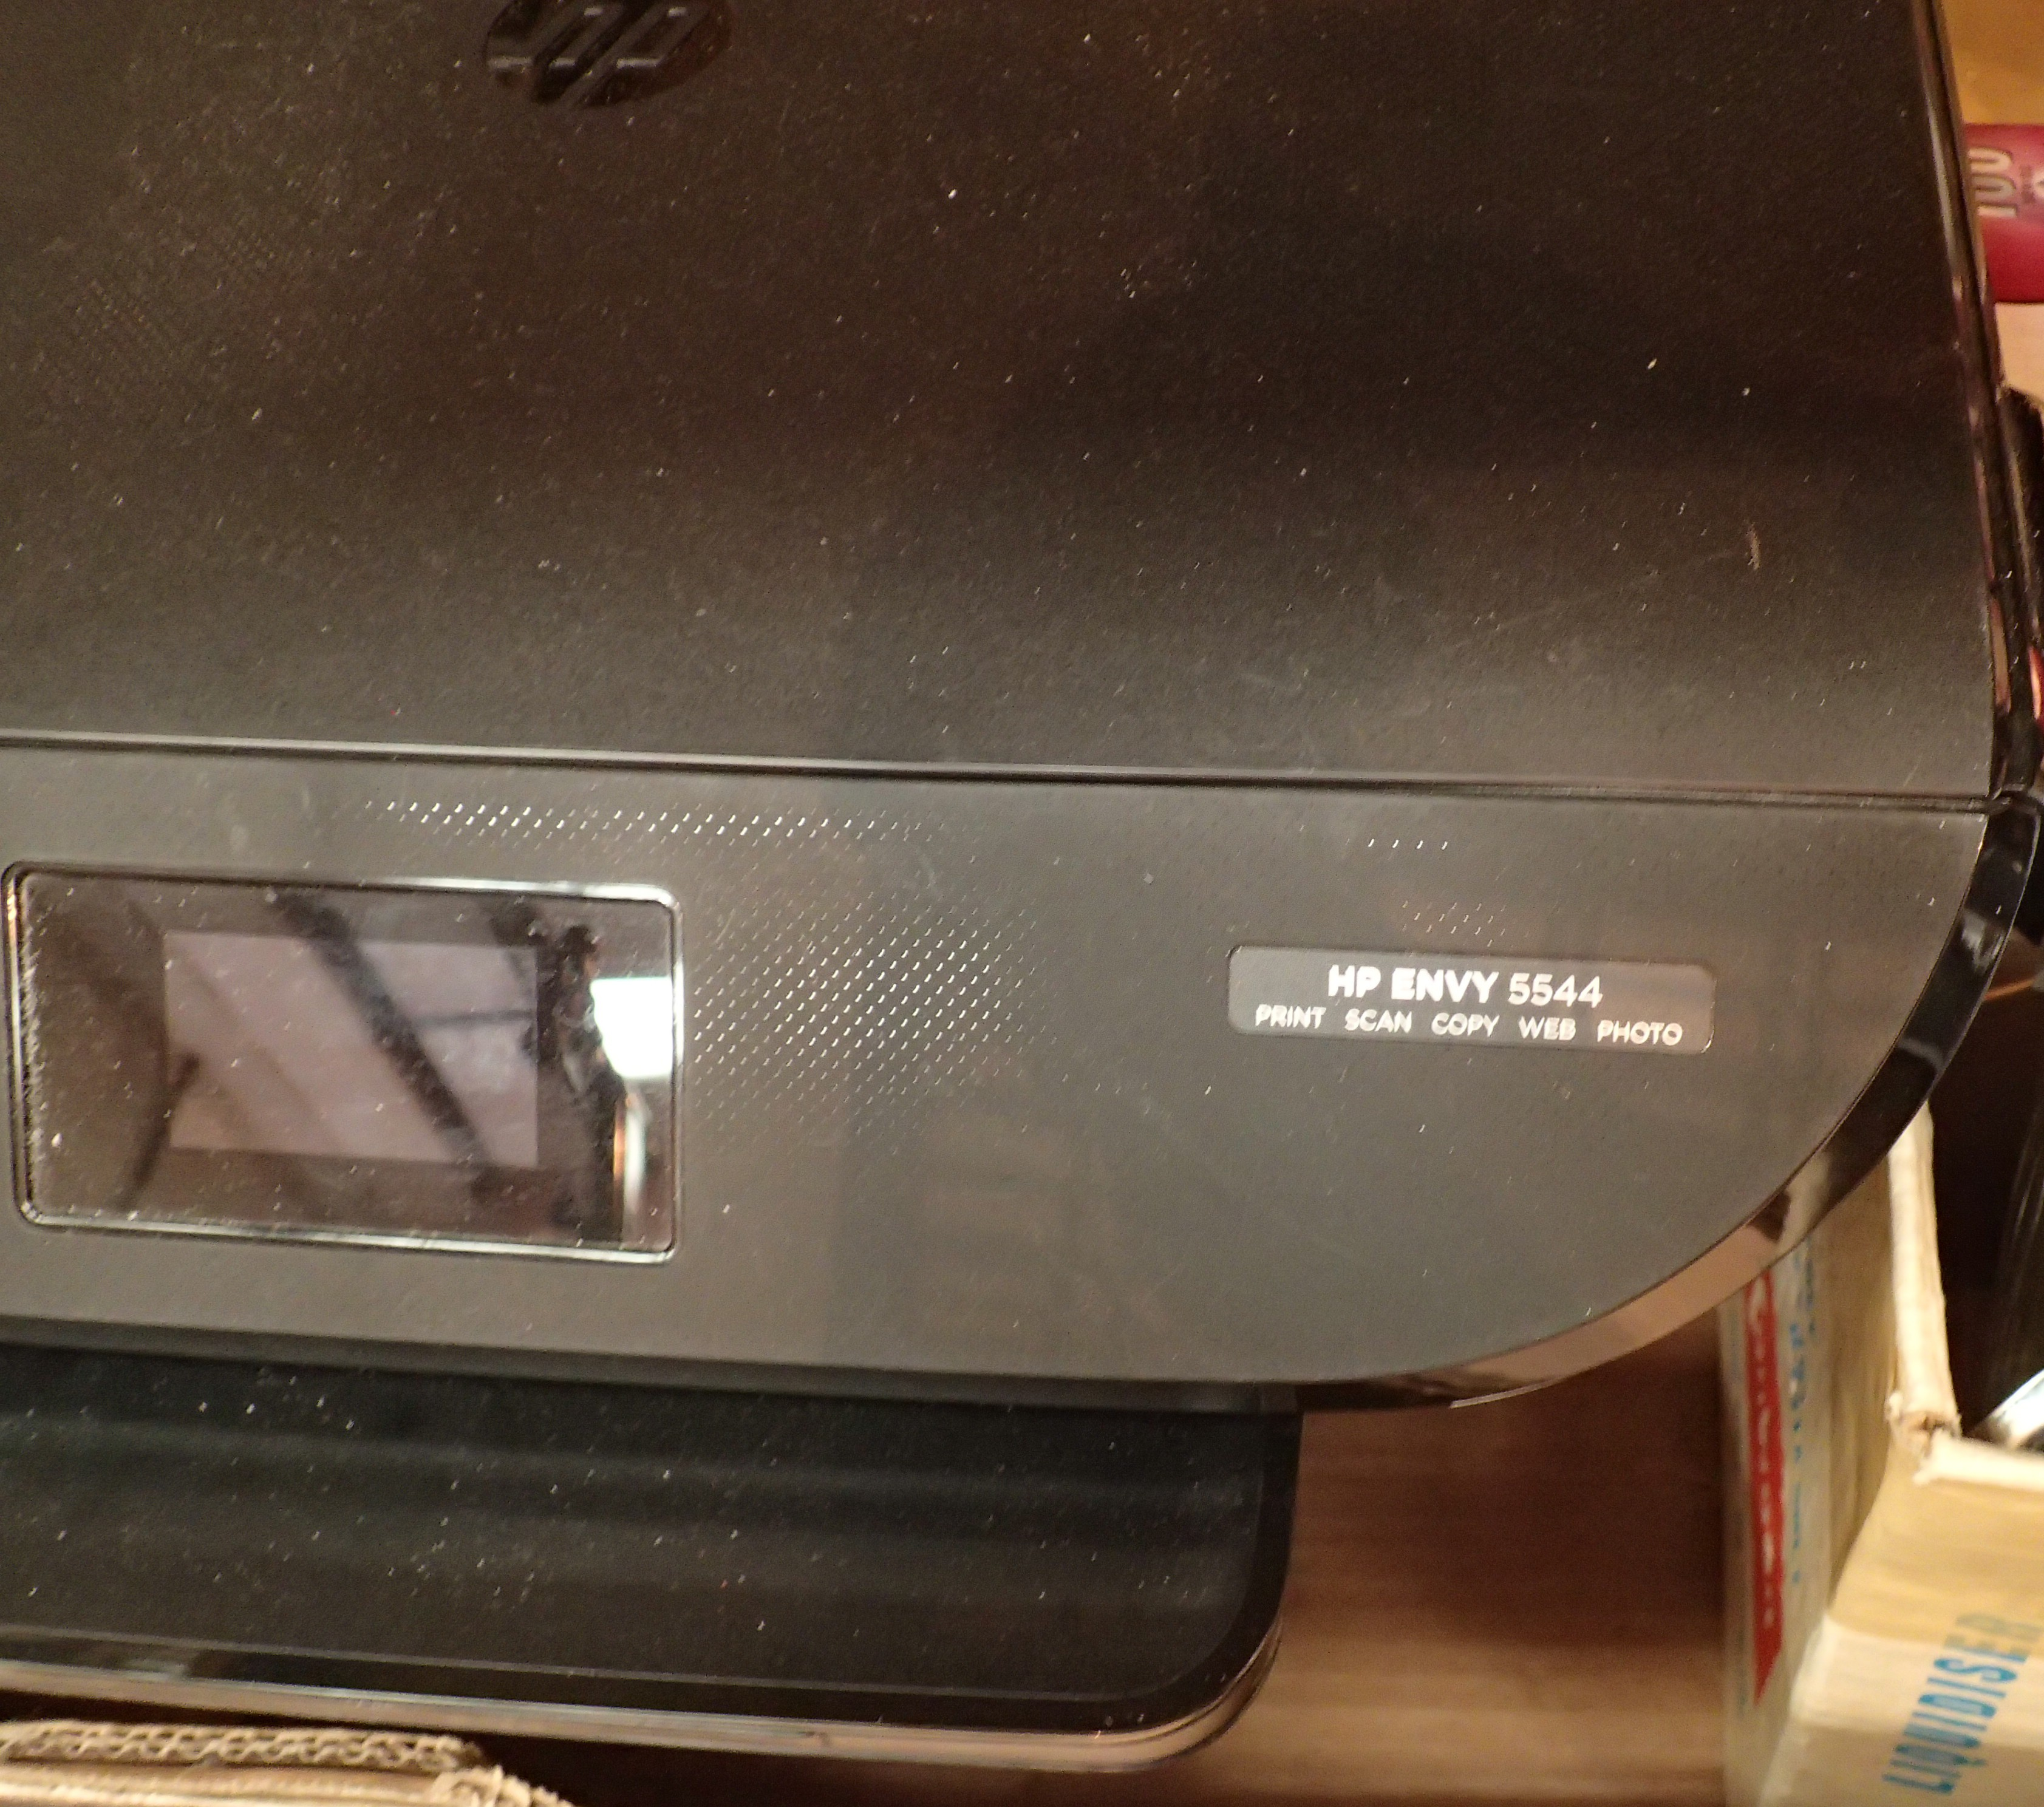 Mixed electricals including a HP printer, electric iron, toaster etc. Not available for in-house P&